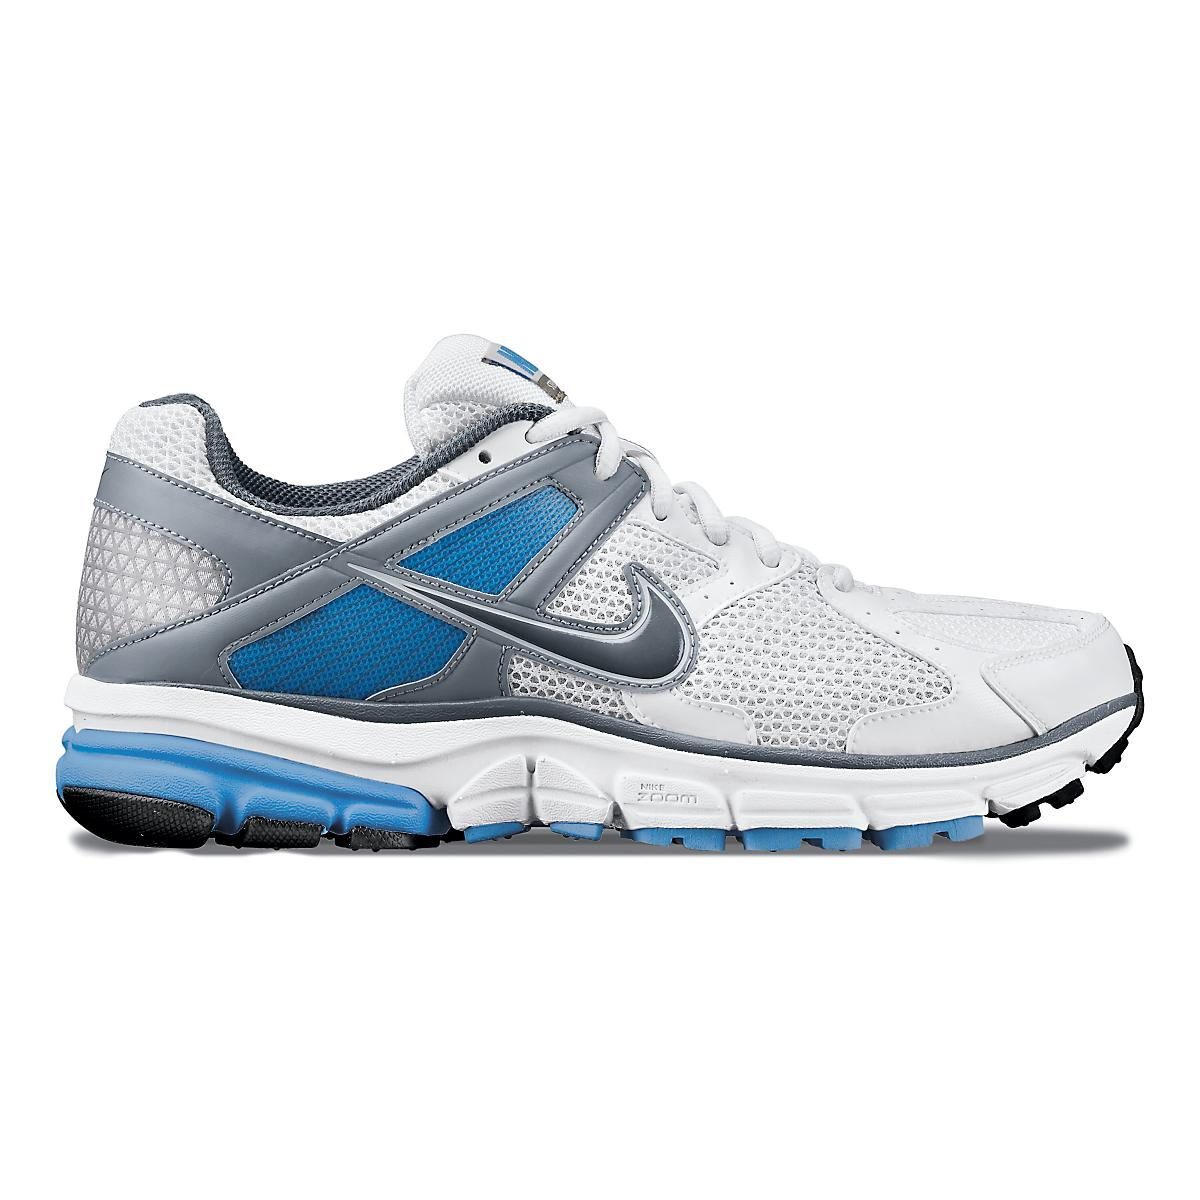 huge selection of 65e64 9be14 Womens Nike Zoom Structure Triax+ 14 Running Shoe at Road Runner Sports